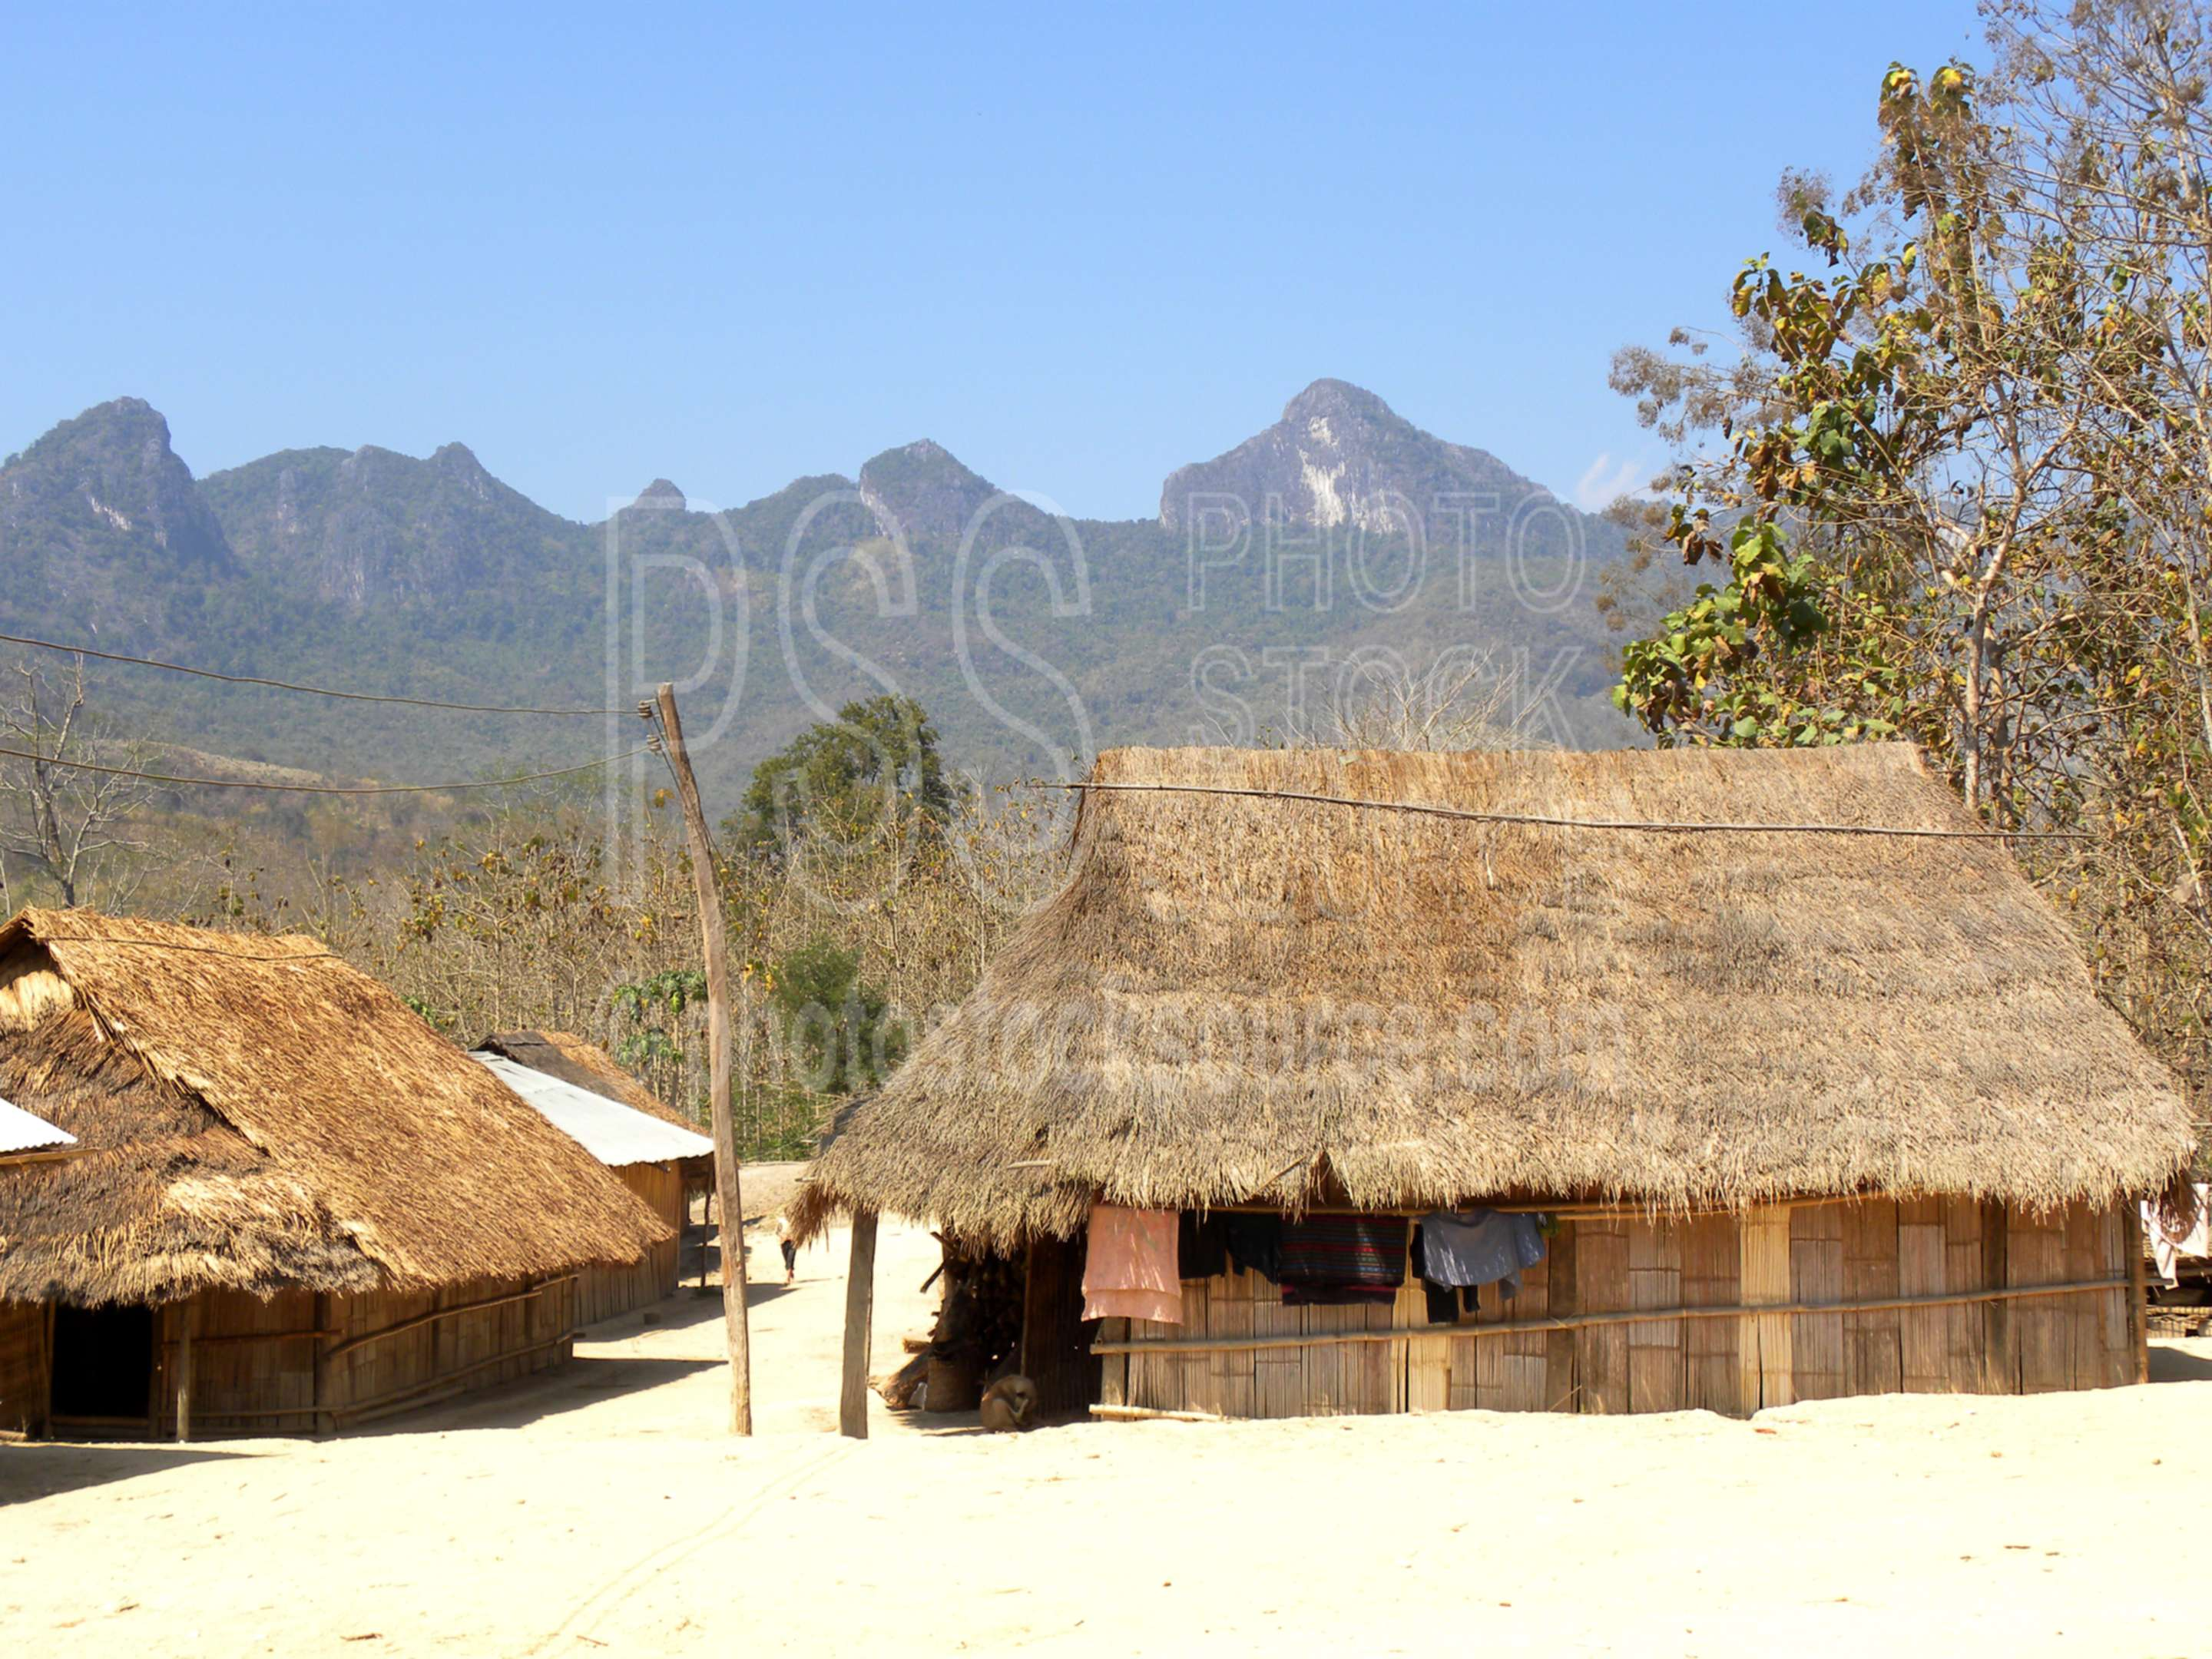 Village Houses,house,dwelling,grass,bamboo,natural,thatched,roof,hut